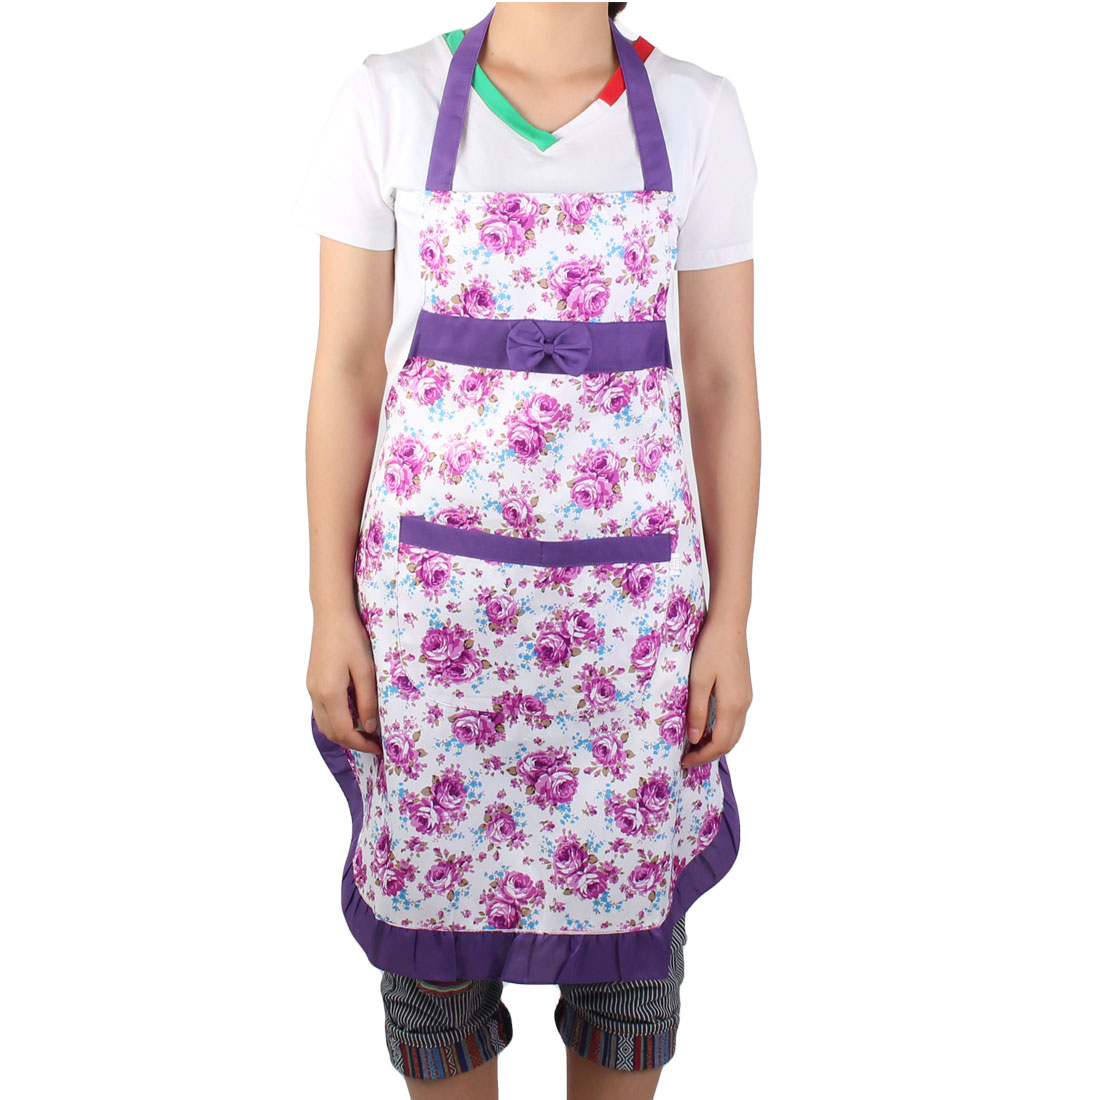 Restaurant Kitchen Flower Printed Bow Housework Cooking Apron Bib Pocket Dress White Purple